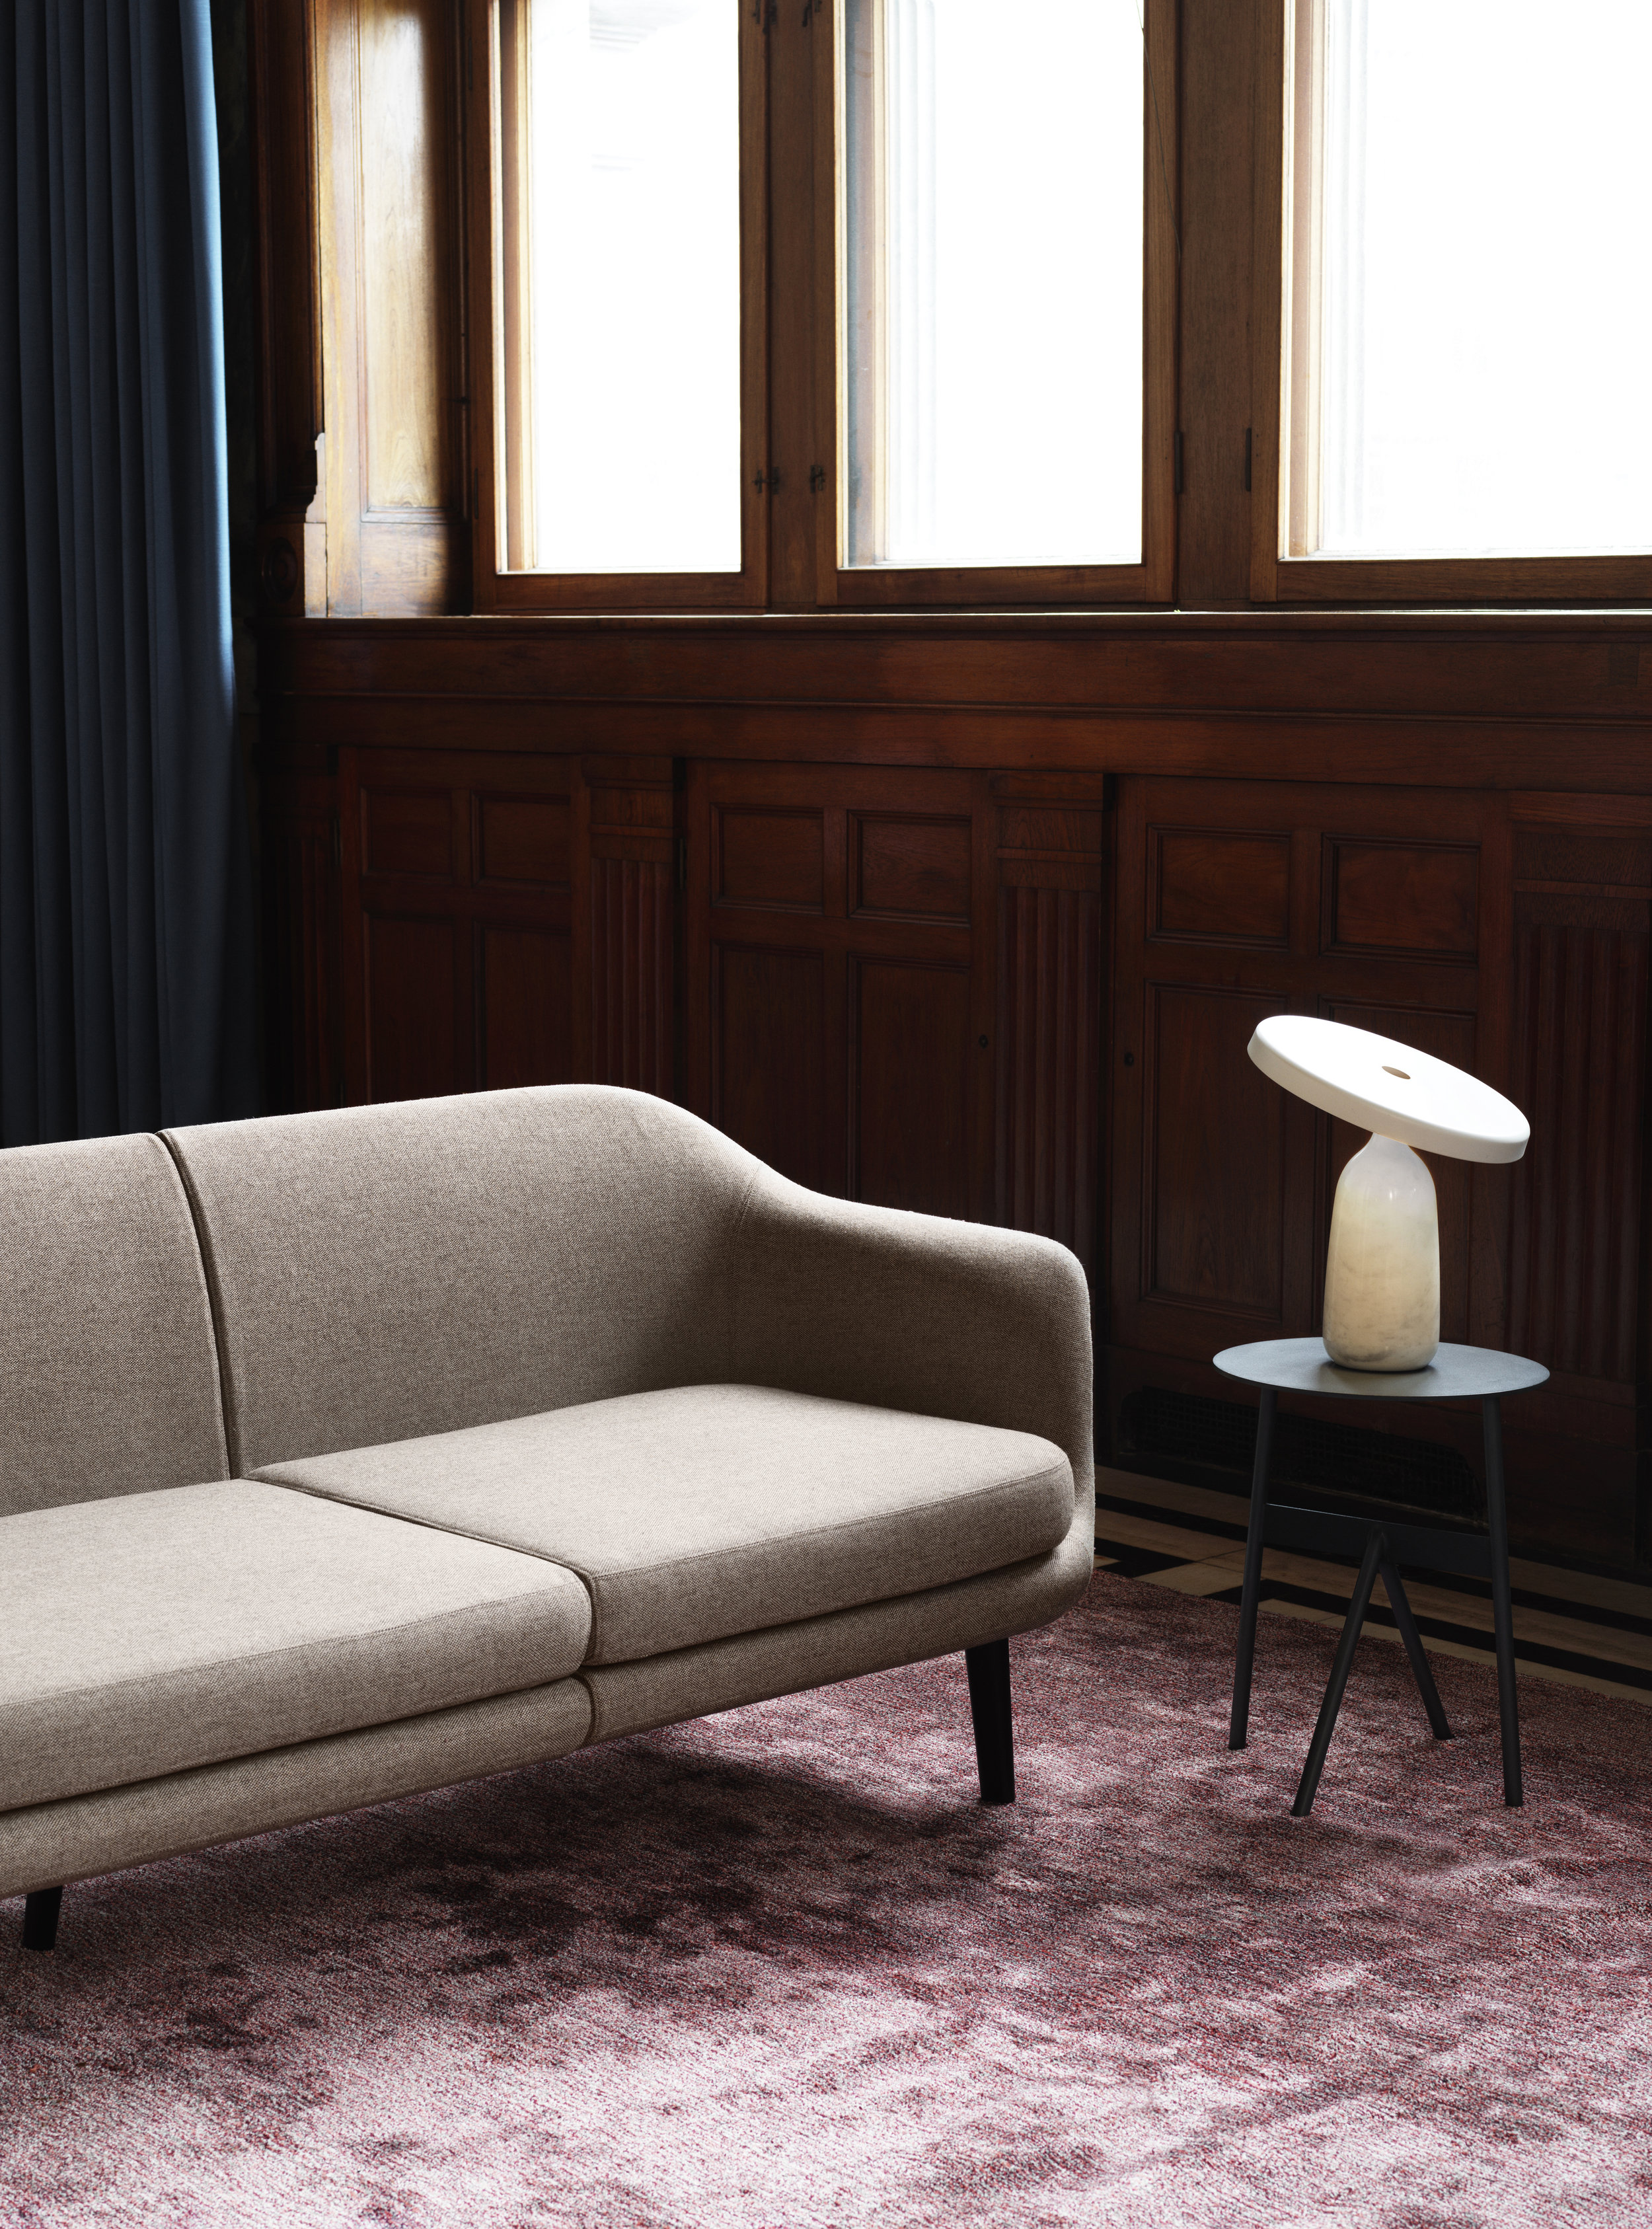 New collection - Eddy Table Lamp by Norman Copenhagen